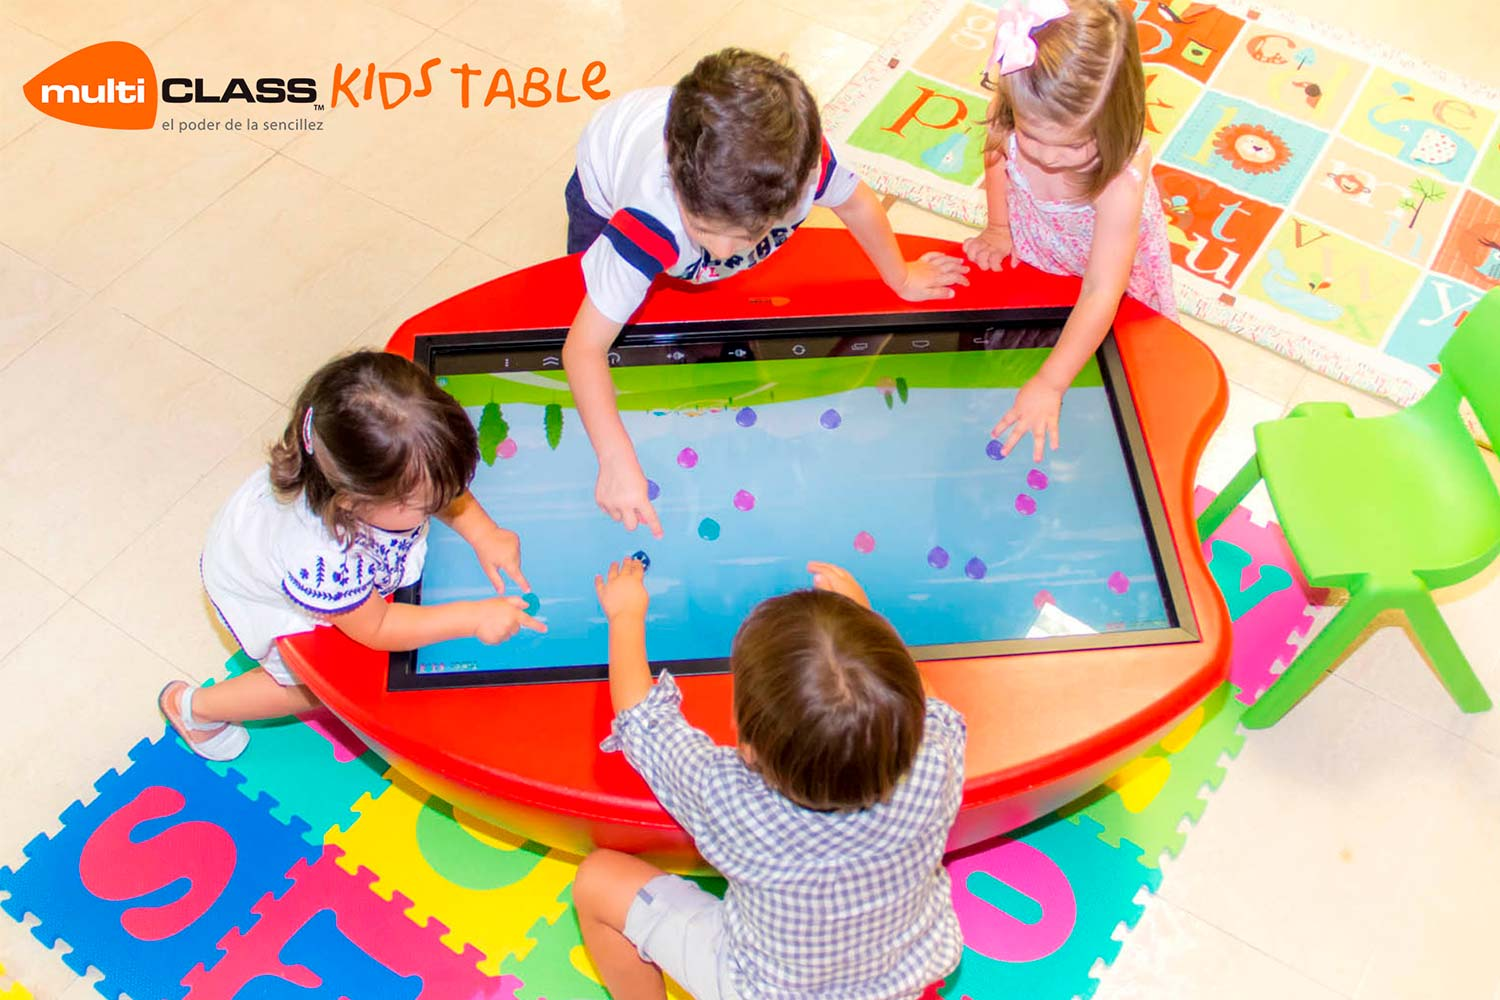 Mesa táctil interactiva infantil multiCLASS Kids Table educacion